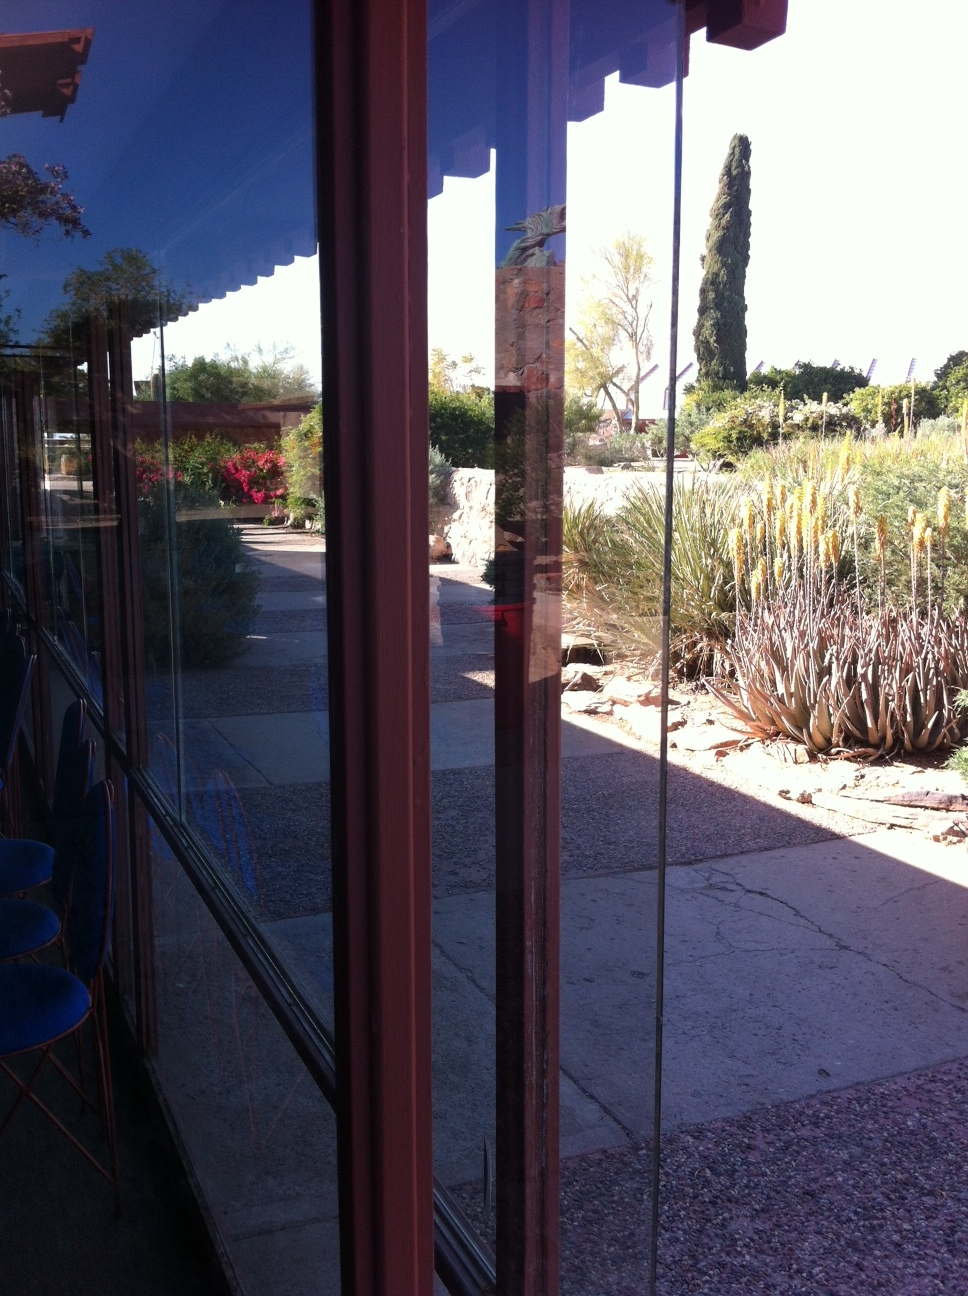 The large dining room for the campus is very modern with its floor to ceiling windows.  While Wright was not a big fan of glass initially, when he did decide to add it to Taliesin West, he did so in an innovative manner by moving the structural posts away from the corners creating better views of the gardens and mountains.  This unpatented technique of frameless glass corners is now popular in contemporary home showers.